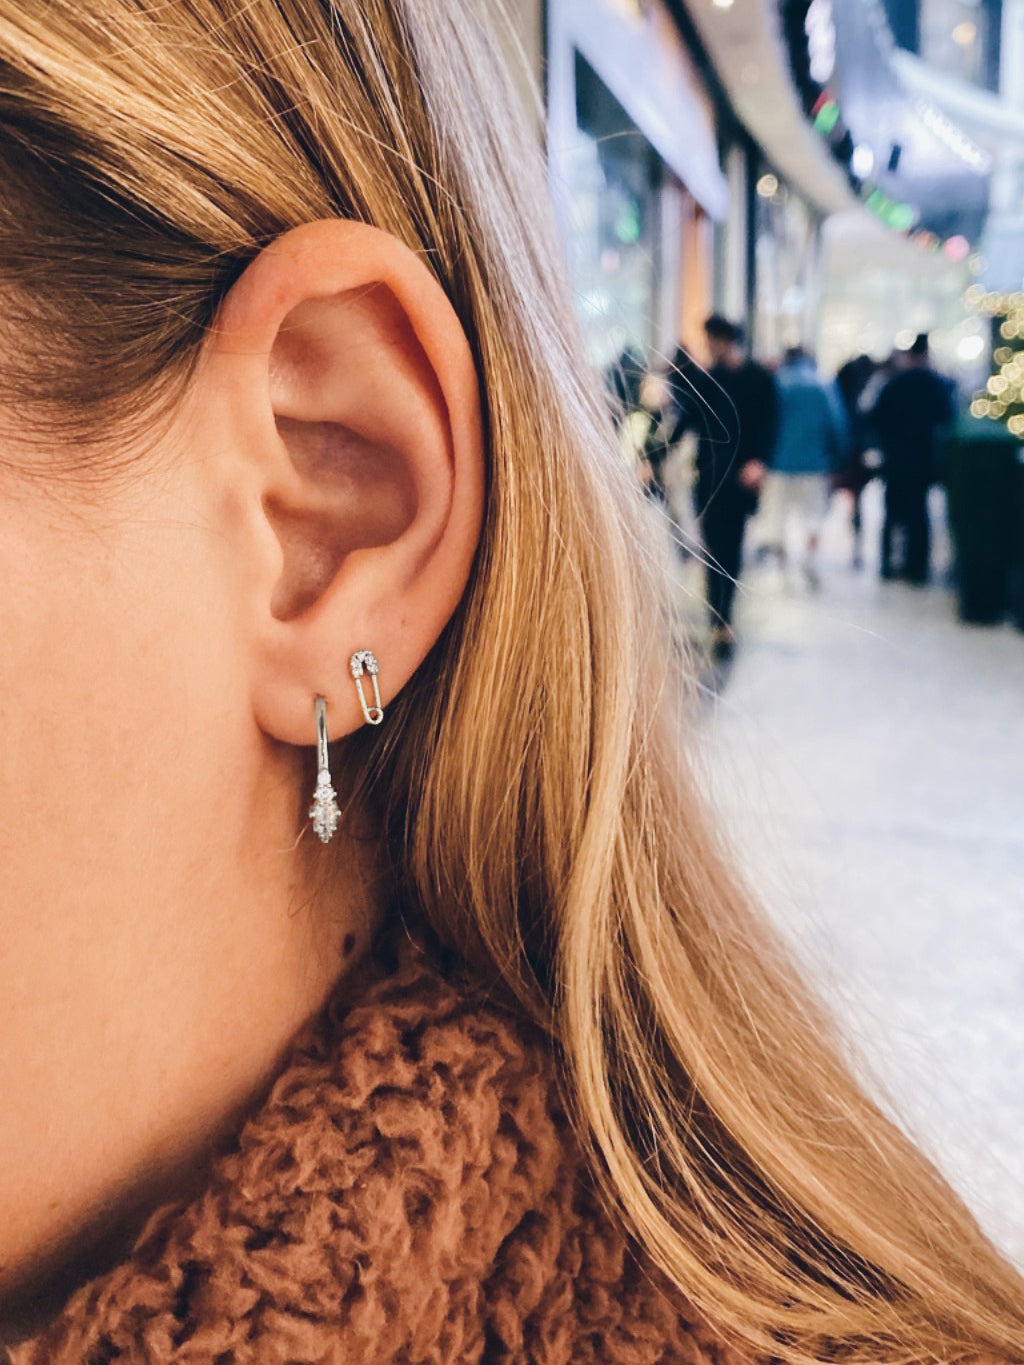 Rhodium Plated Crown design with CZ Round white stones hoops Dangling Earrings by The Faint Hearted Jewelry